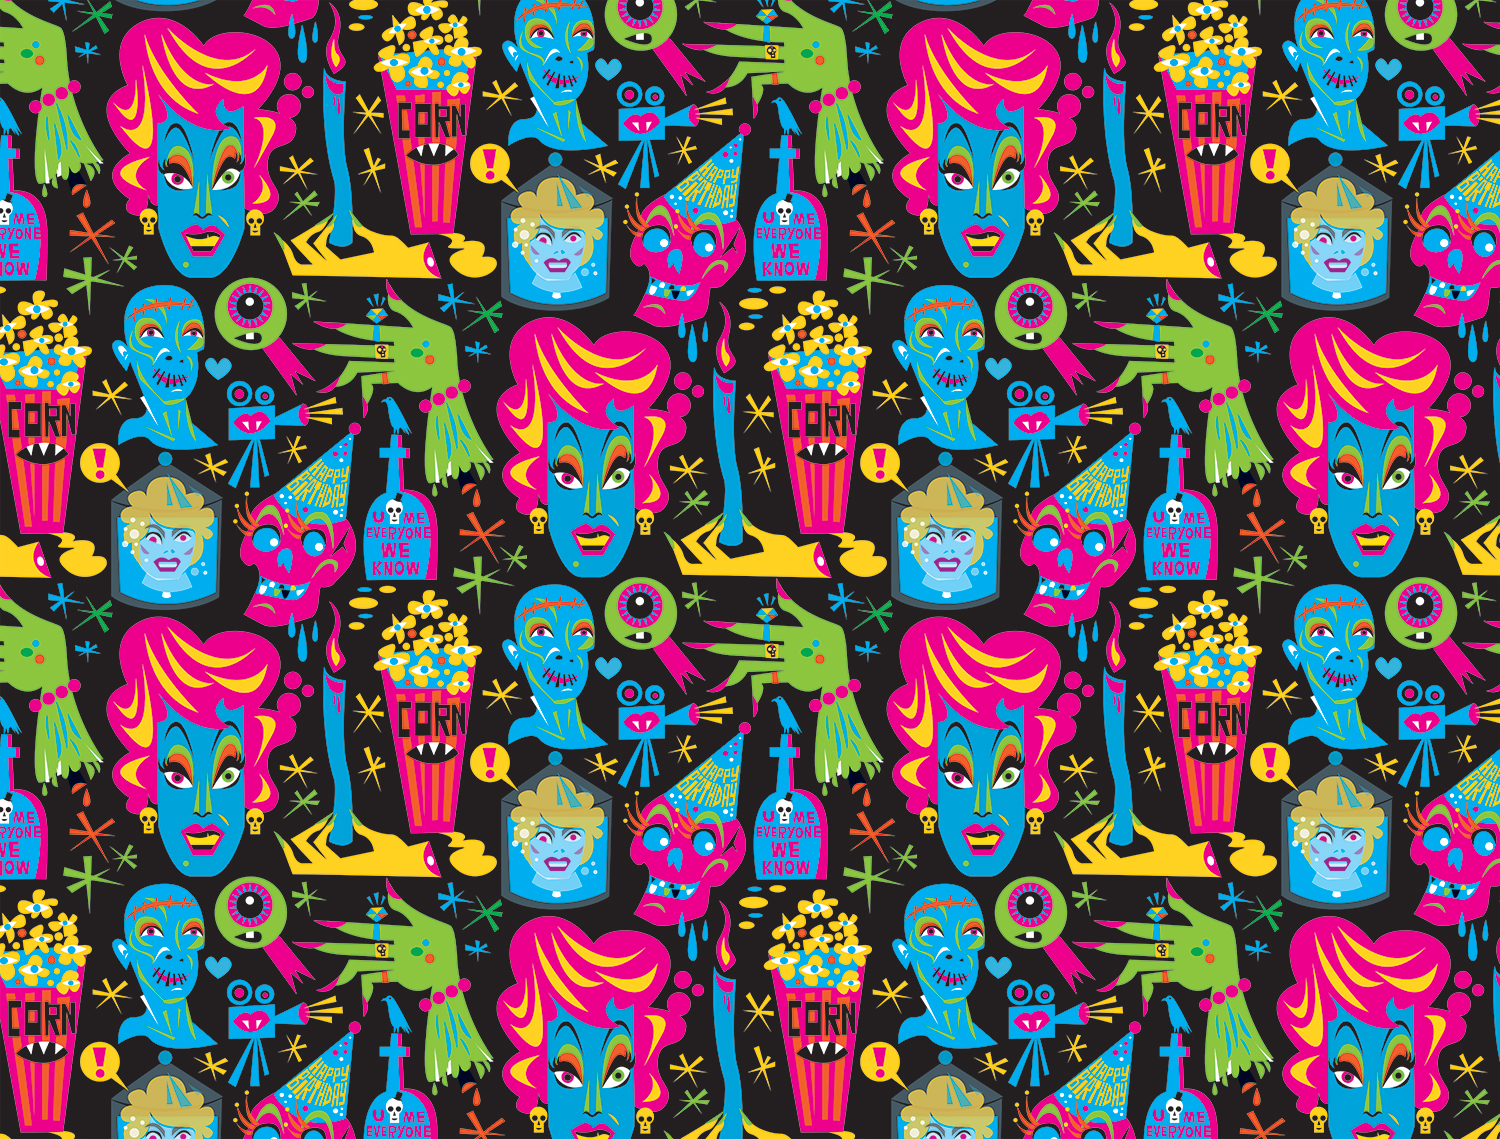 pc_endpaper_pattern_black_v2.jpg